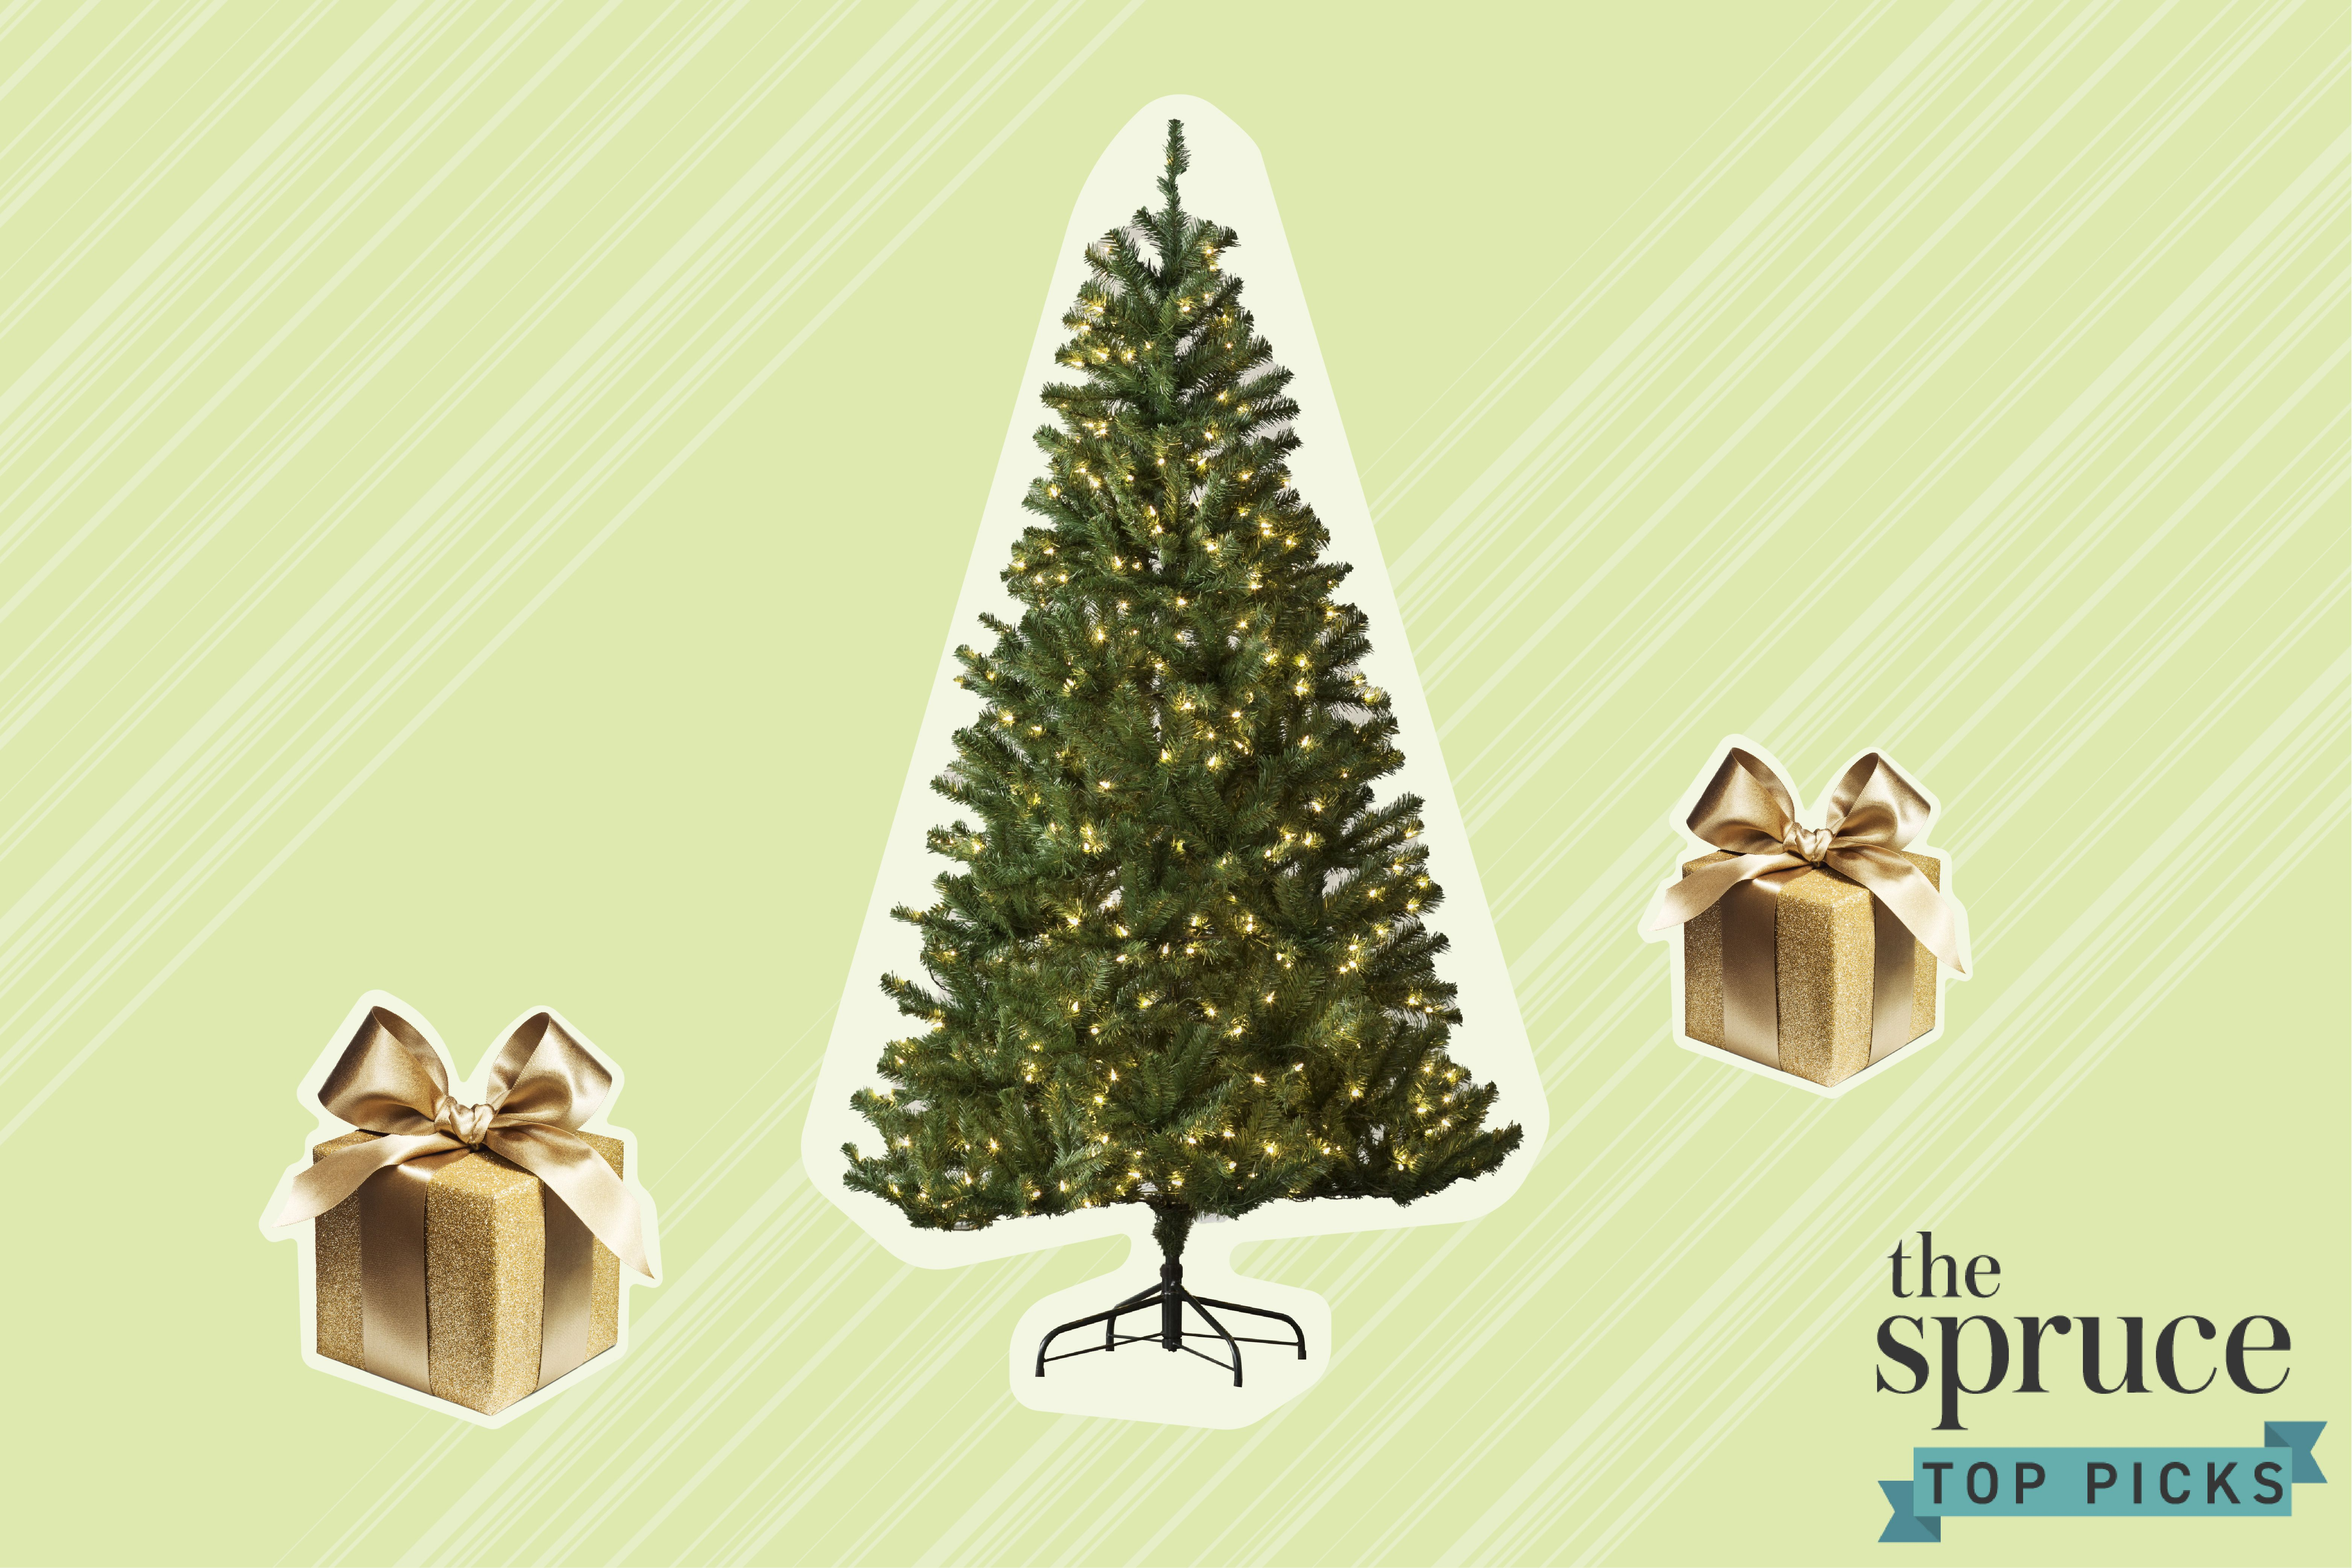 Most Realistic Artificial Christmas Trees 2021 The 9 Best Artificial Christmas Trees Of 2021